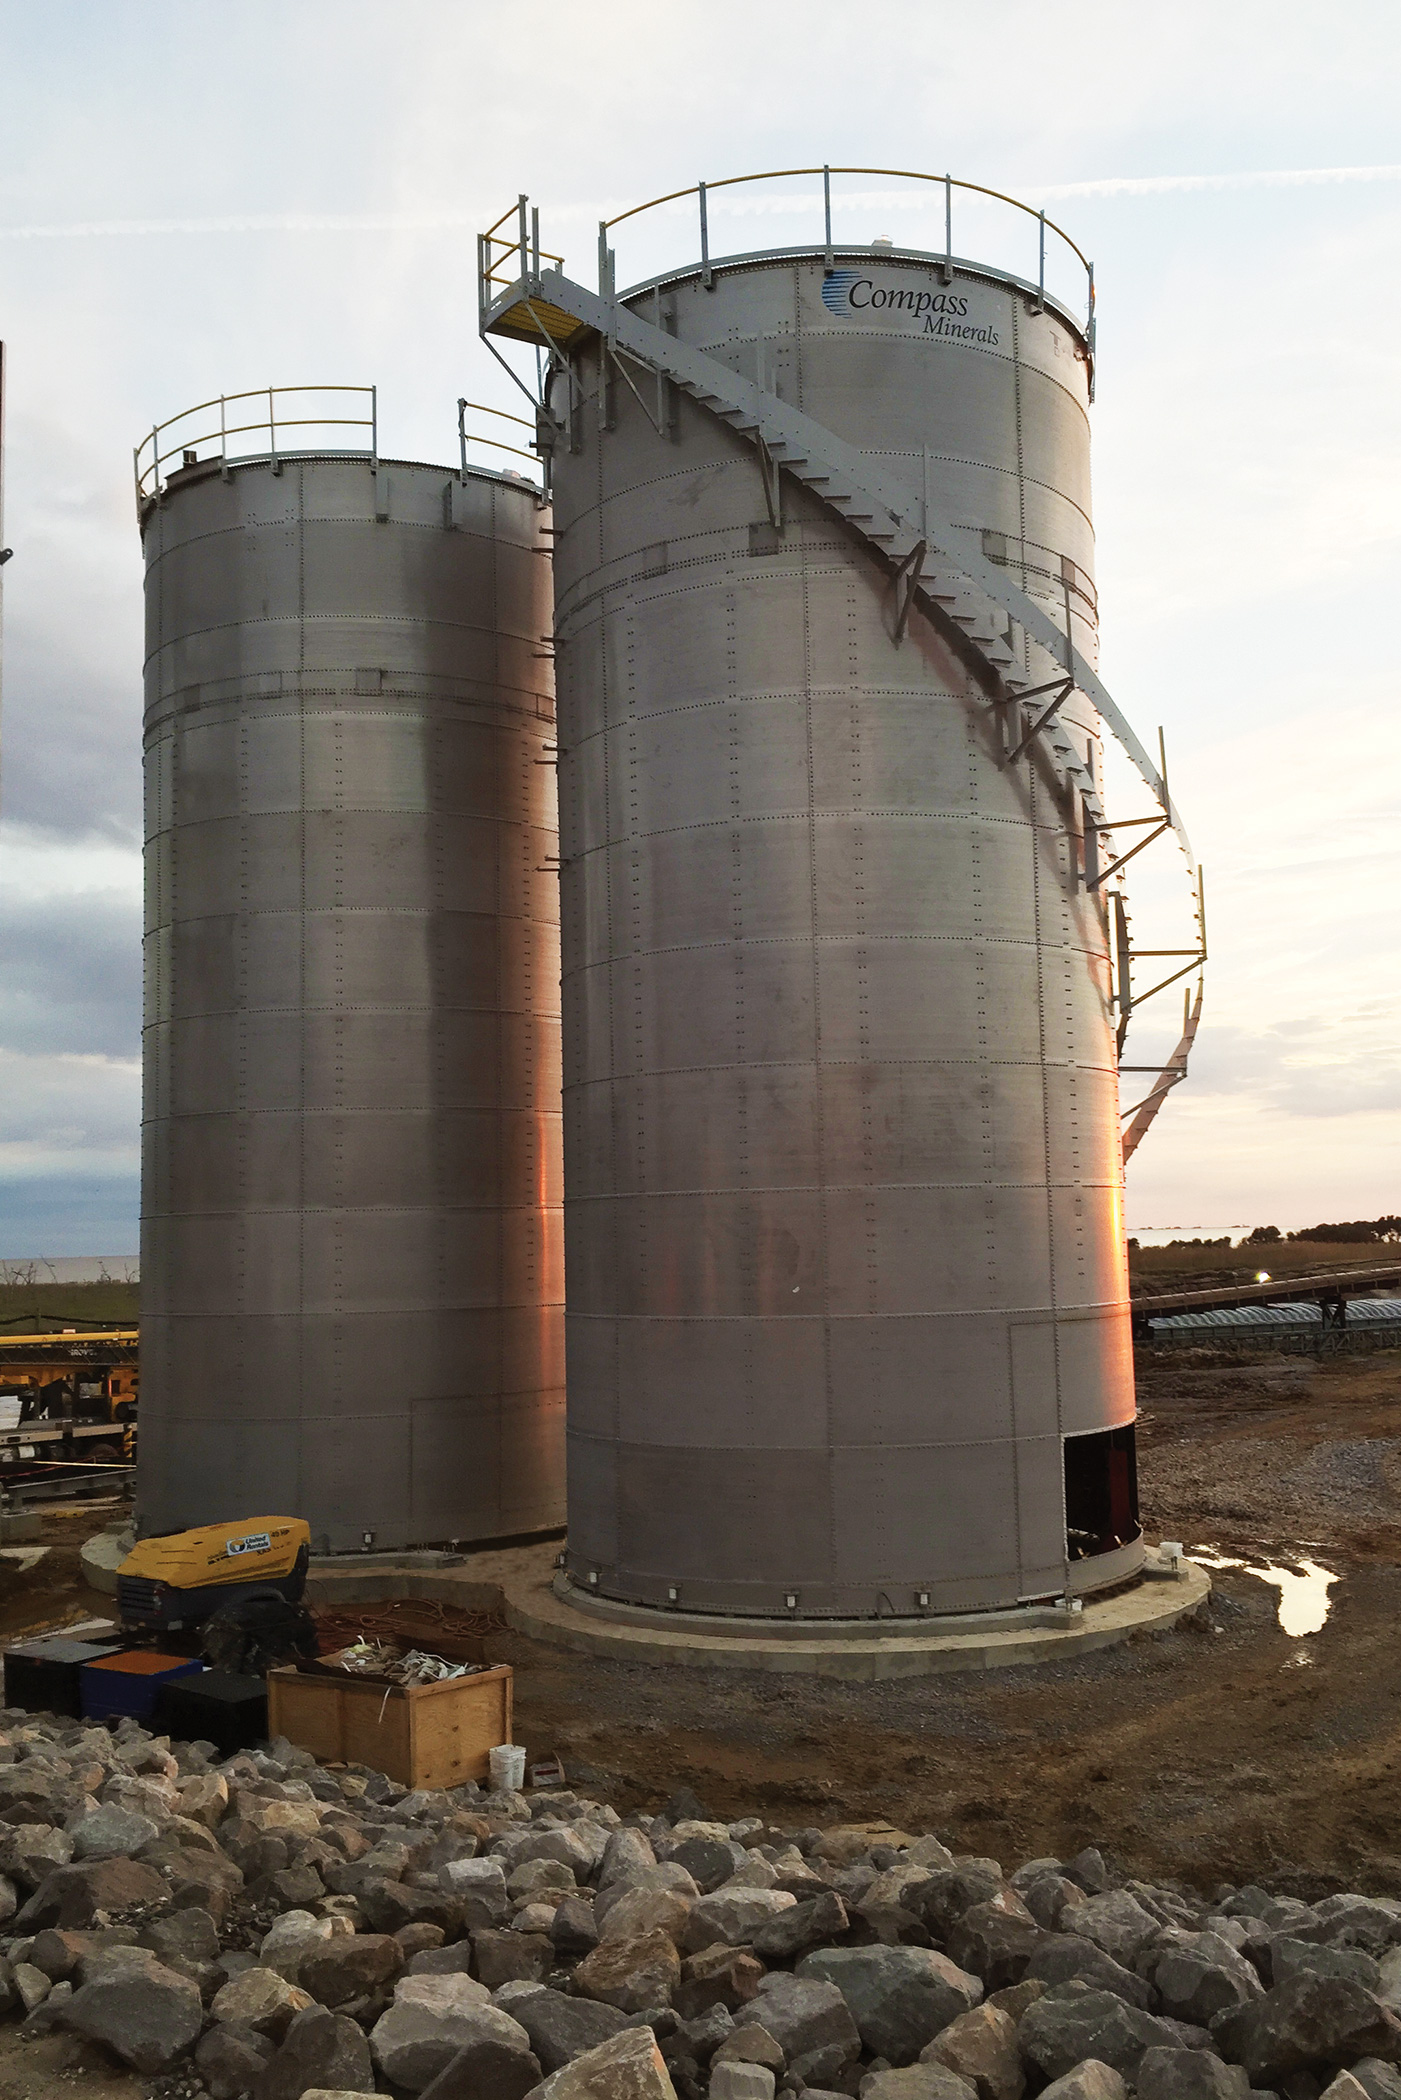 Salt mining stainless steel silos